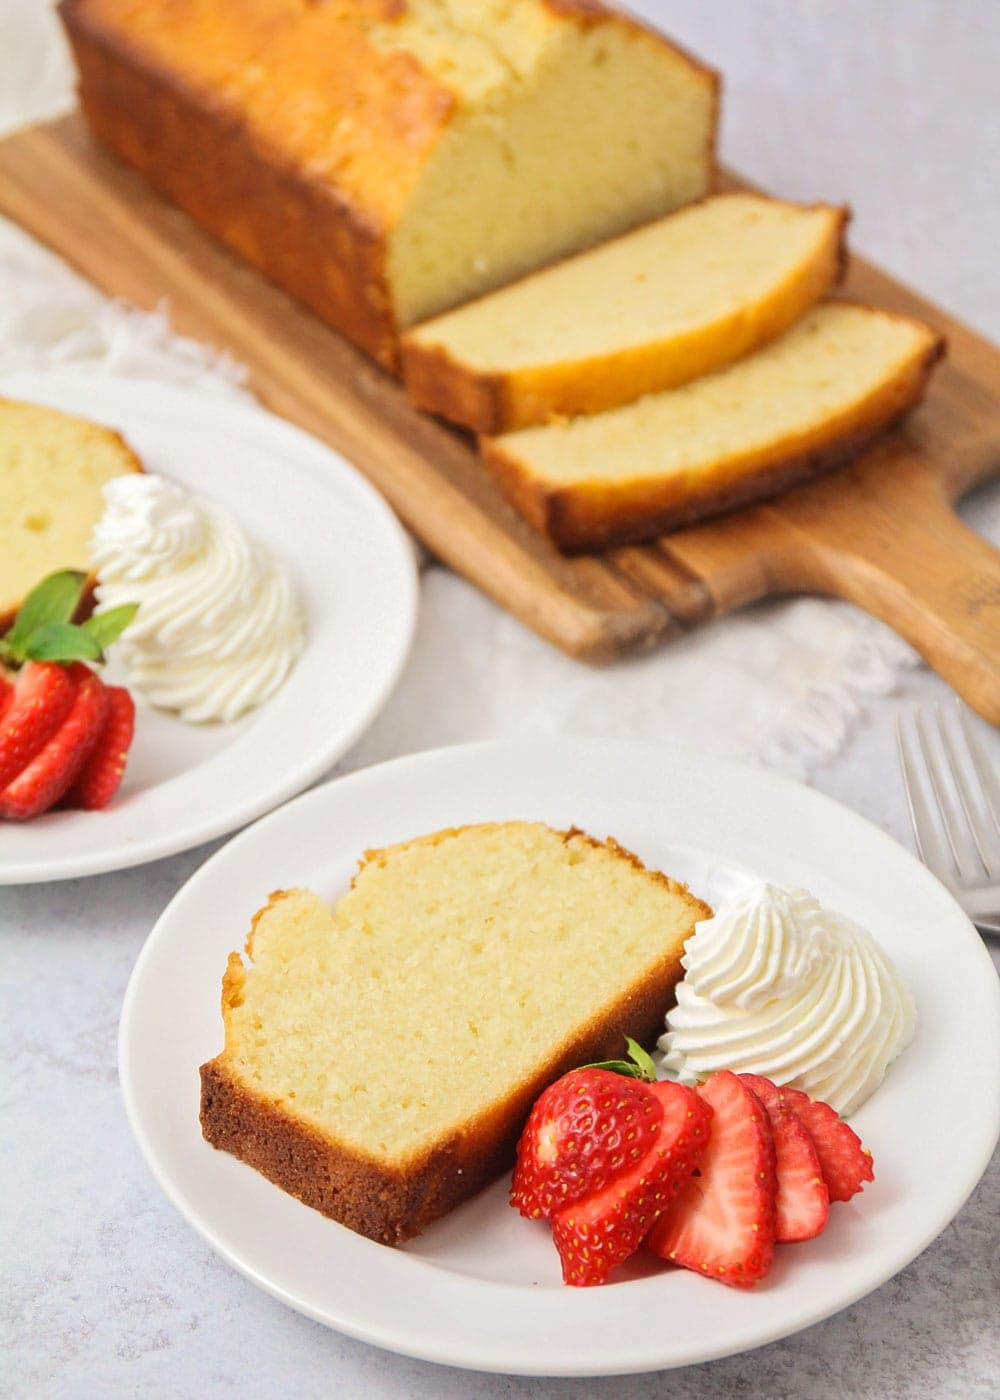 A slice of pound cake on a white plate